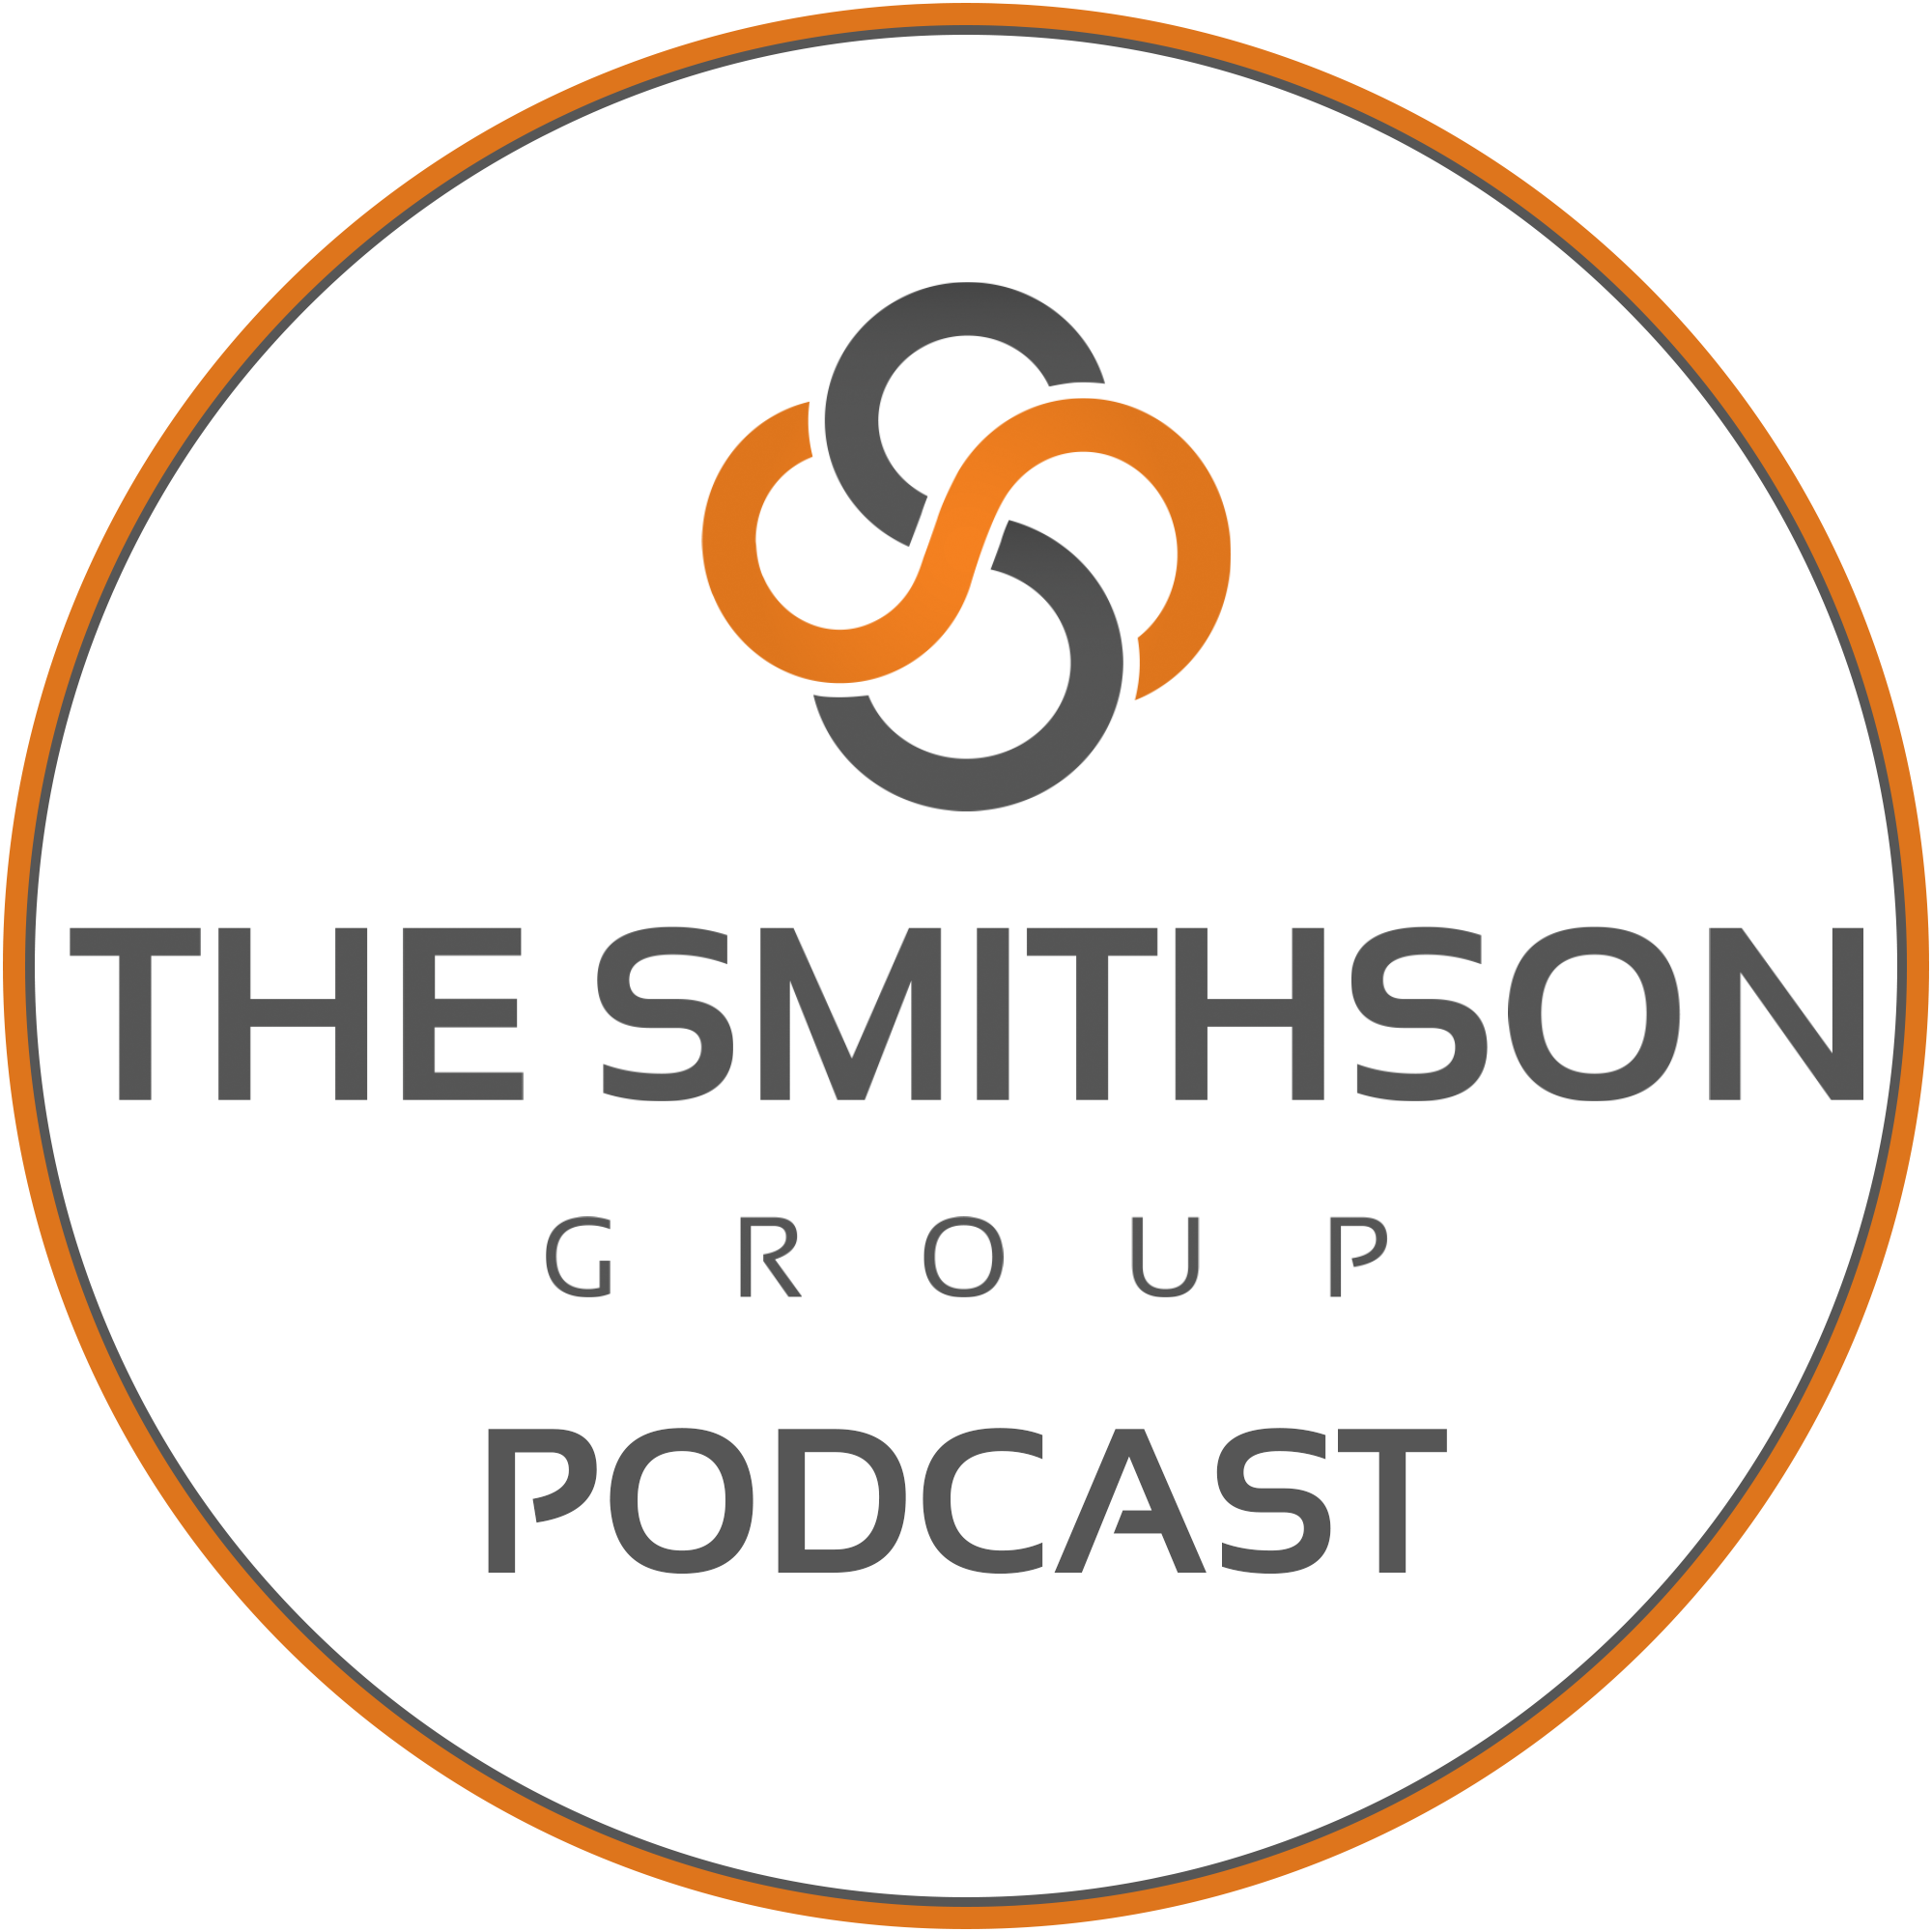 The Smithson Group Podcast